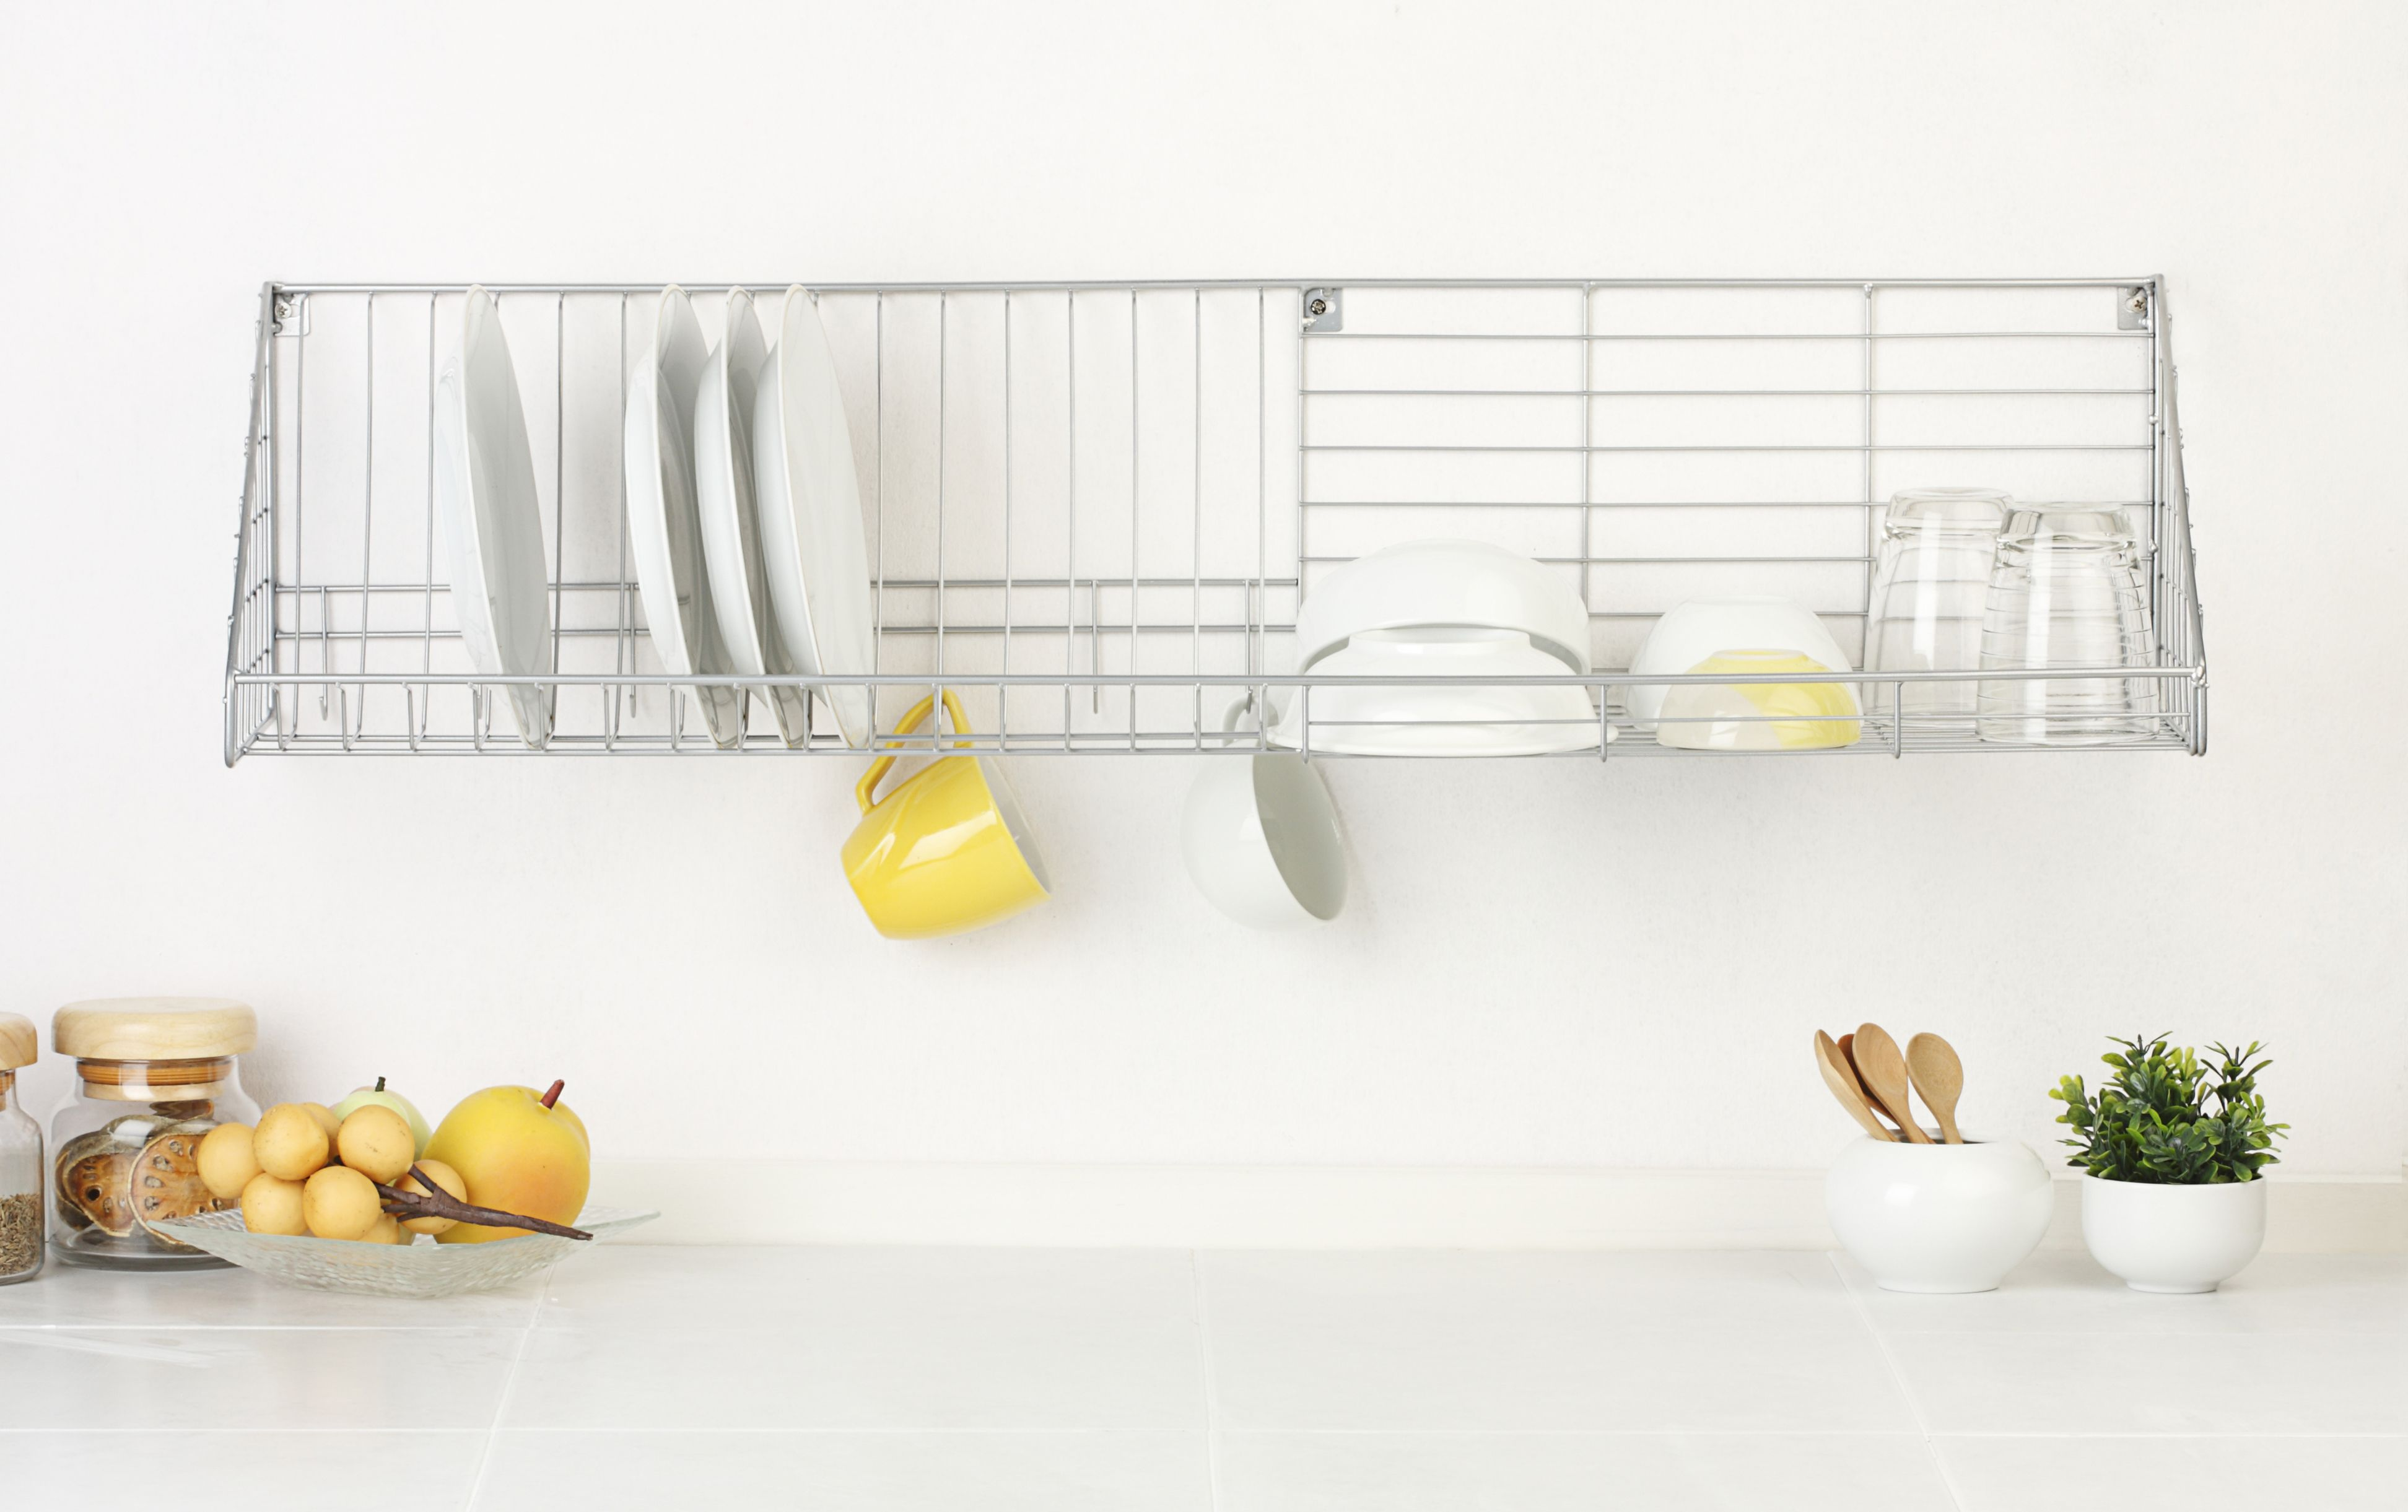 High Quality Picture Of Wall Mounted Dish Rack And Drainboard